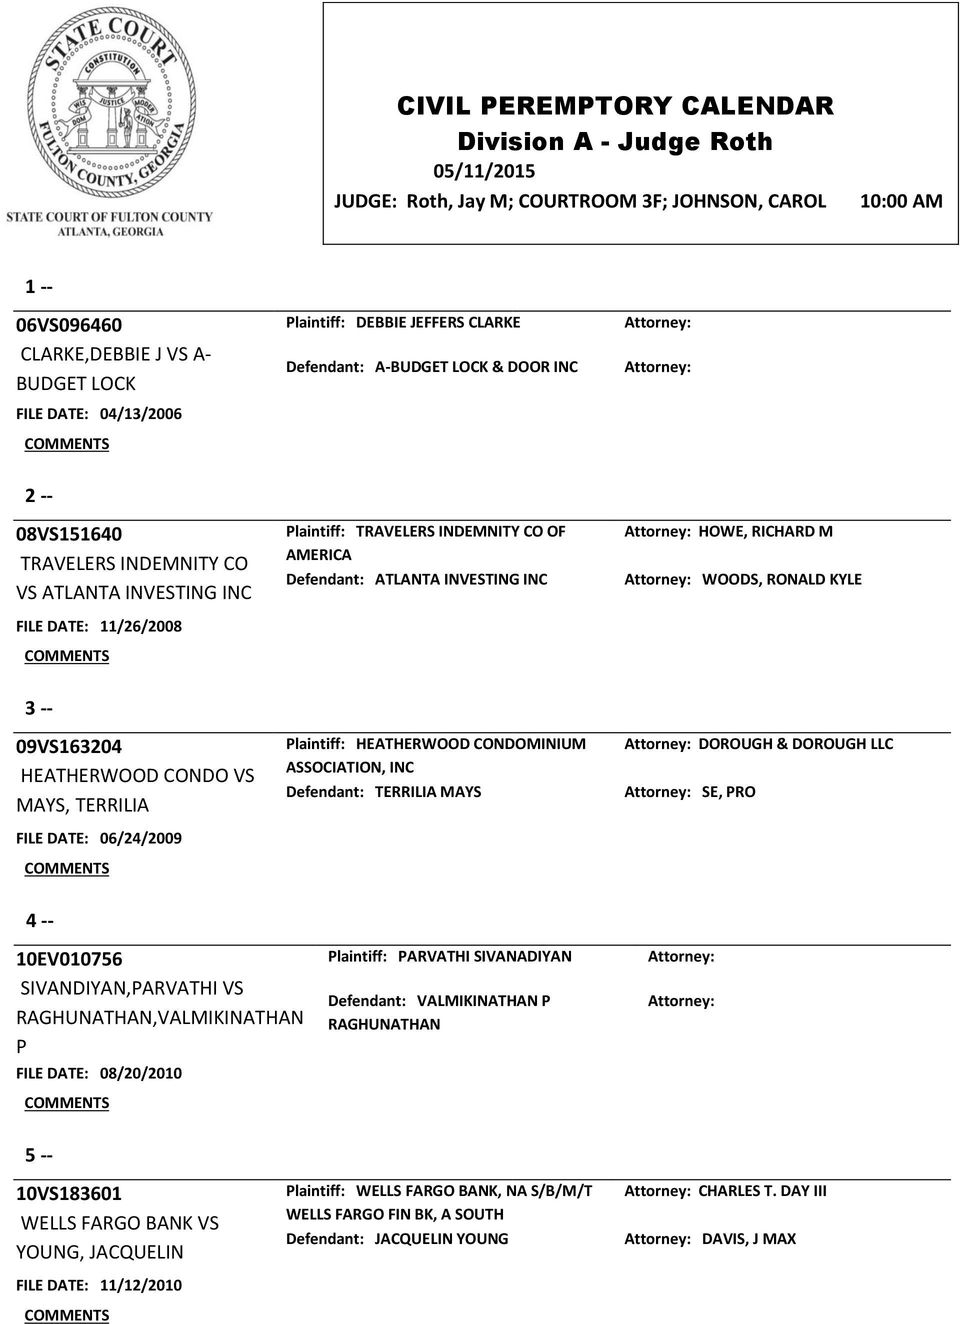 Defendant: ATLANTA INVESTING INC HOWE, RICHARD M WOODS, RONALD KYLE 3 -- 09VS163204 HEATHERWOOD CONDO VS MAYS, TERRILIA FILE DATE: 06/24/2009 Plaintiff: HEATHERWOOD CONDOMINIUM ASSOCIATION, INC